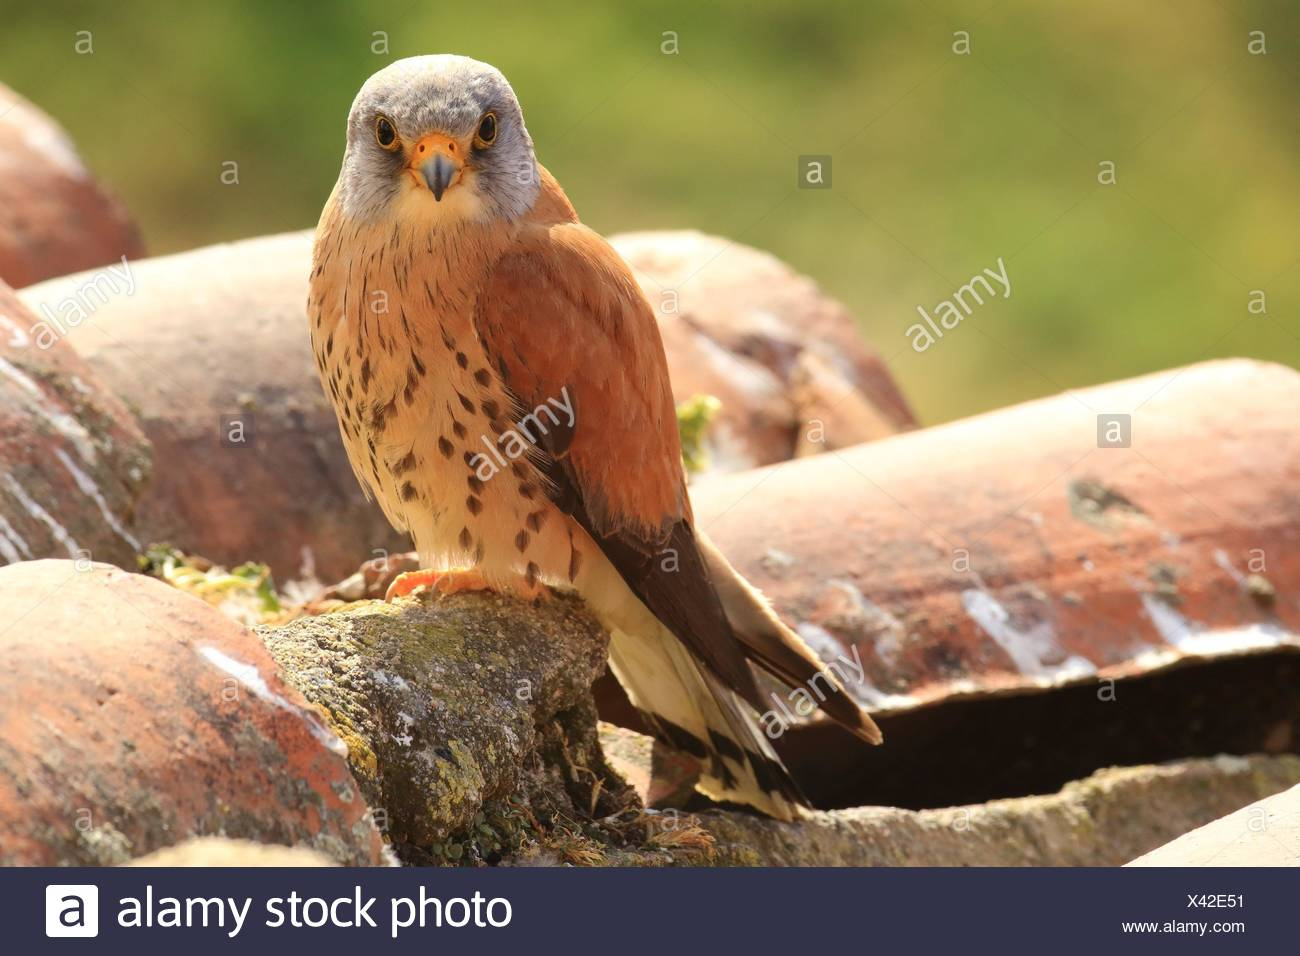 Lesser kestrel, male, in a colony. Extremadura, Spain - Stock Image